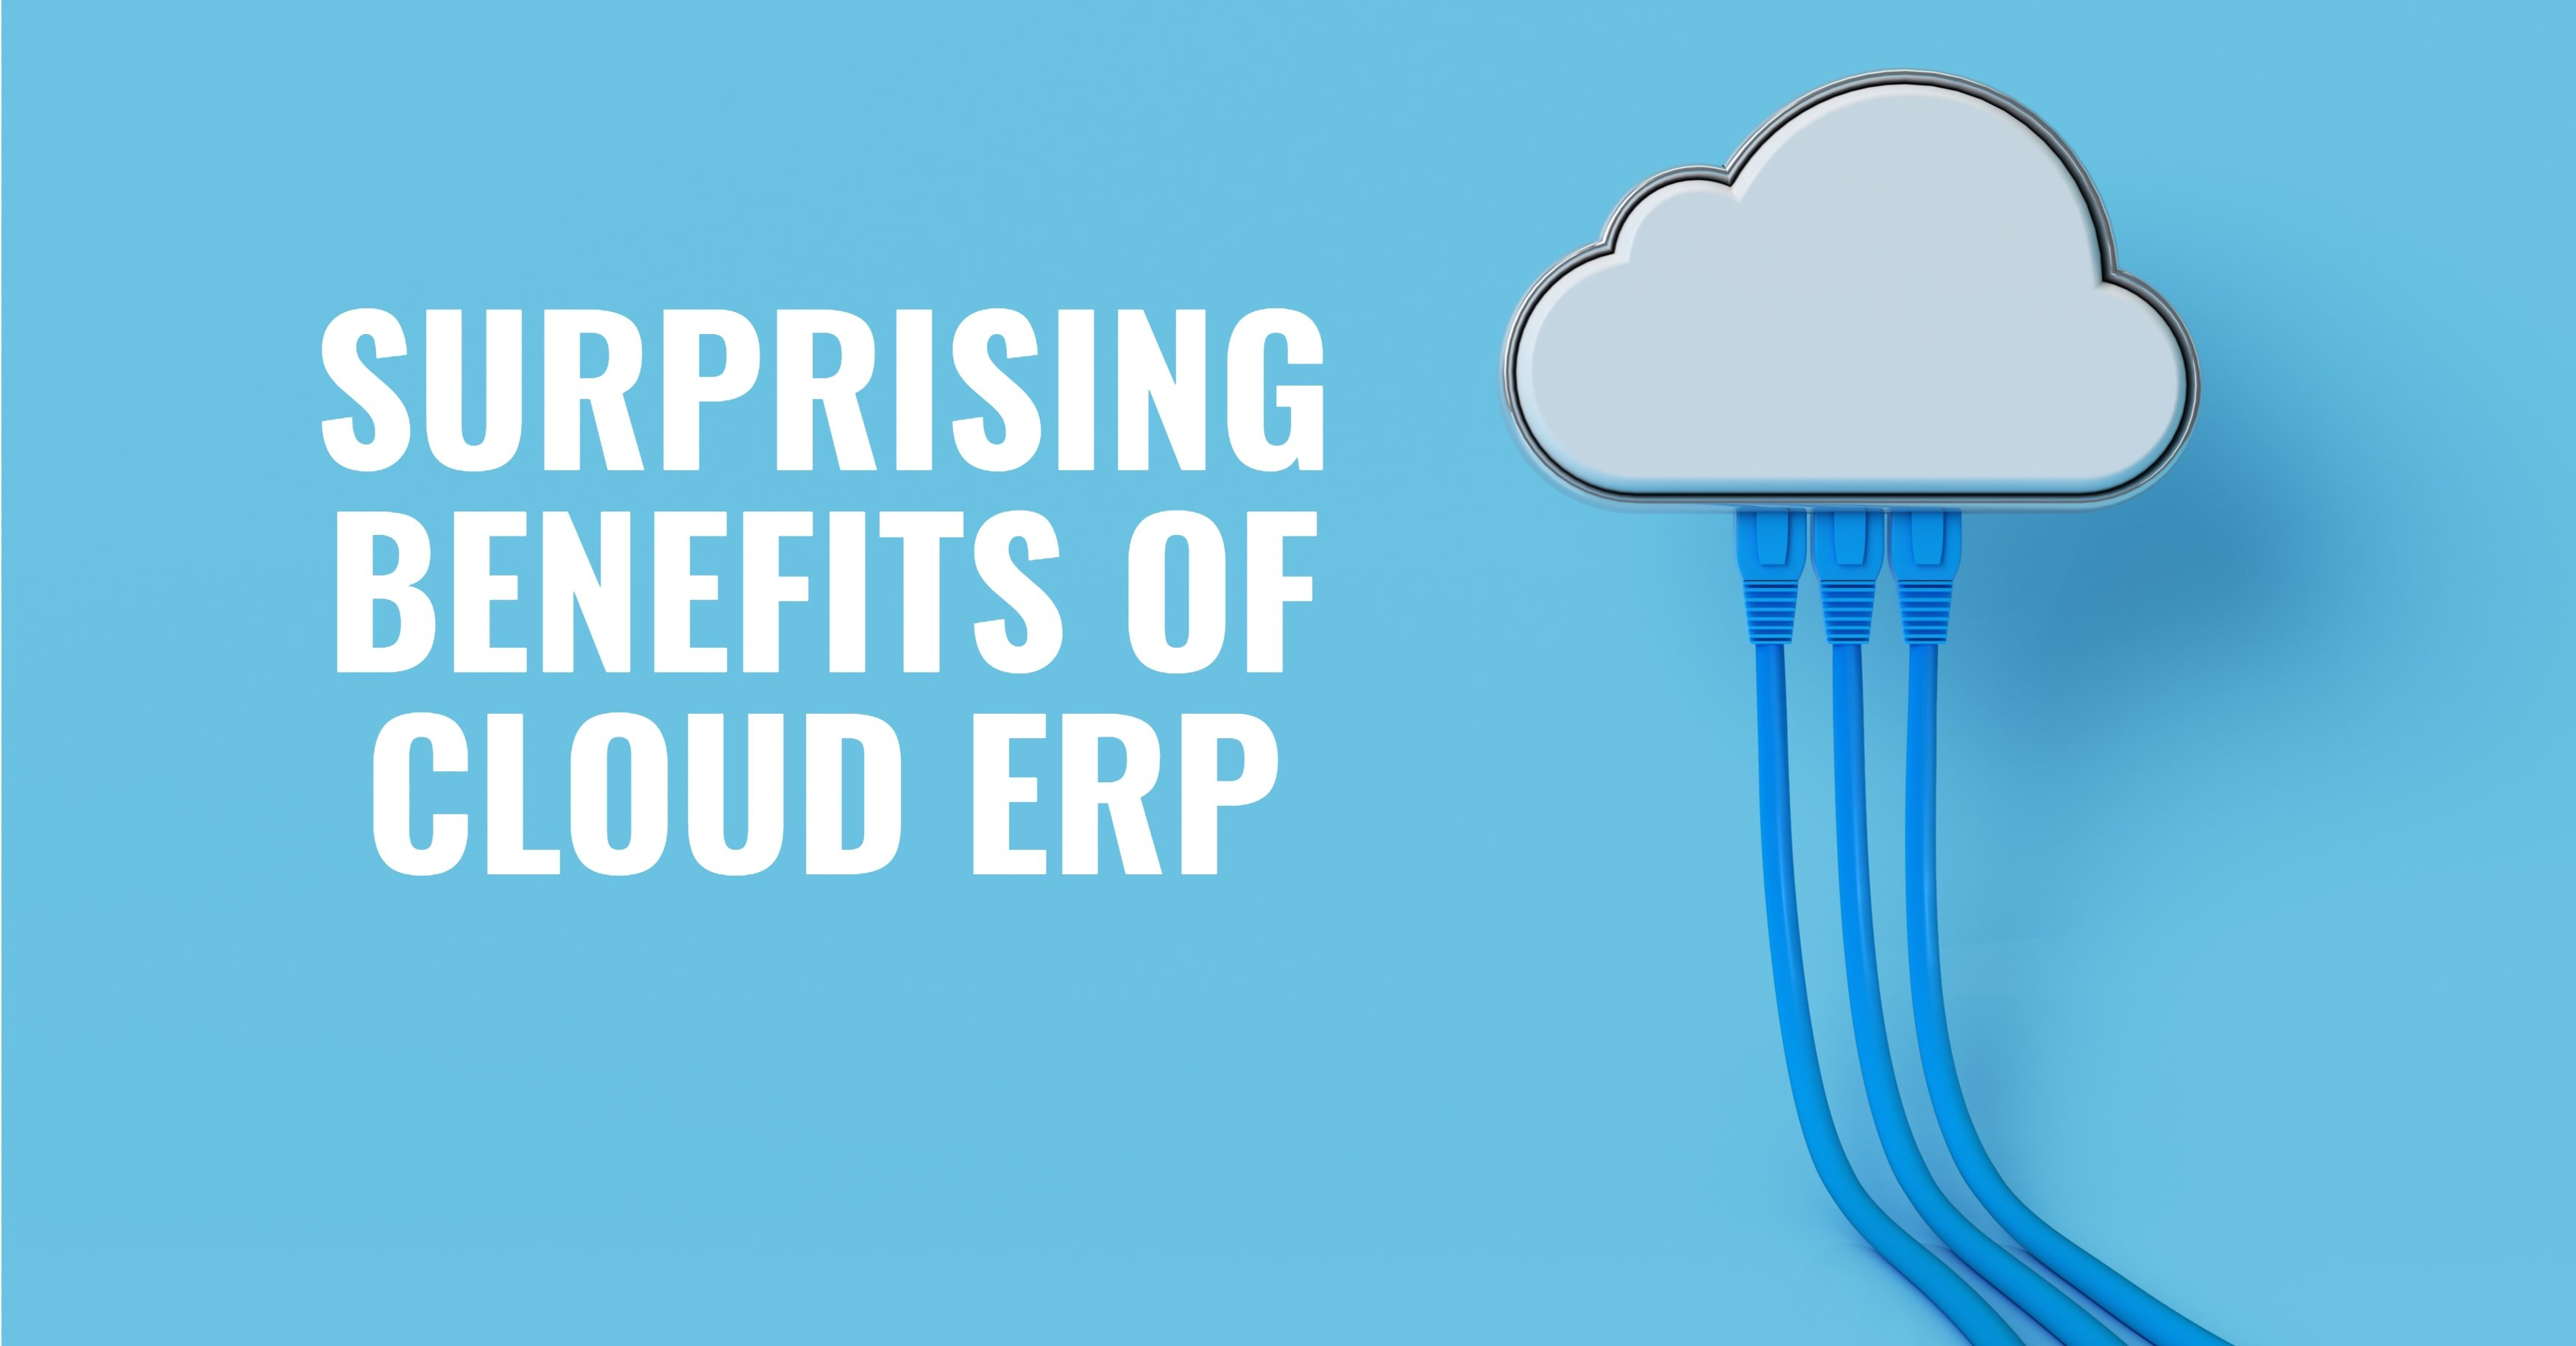 Surprising Benefits of Cloud ERP